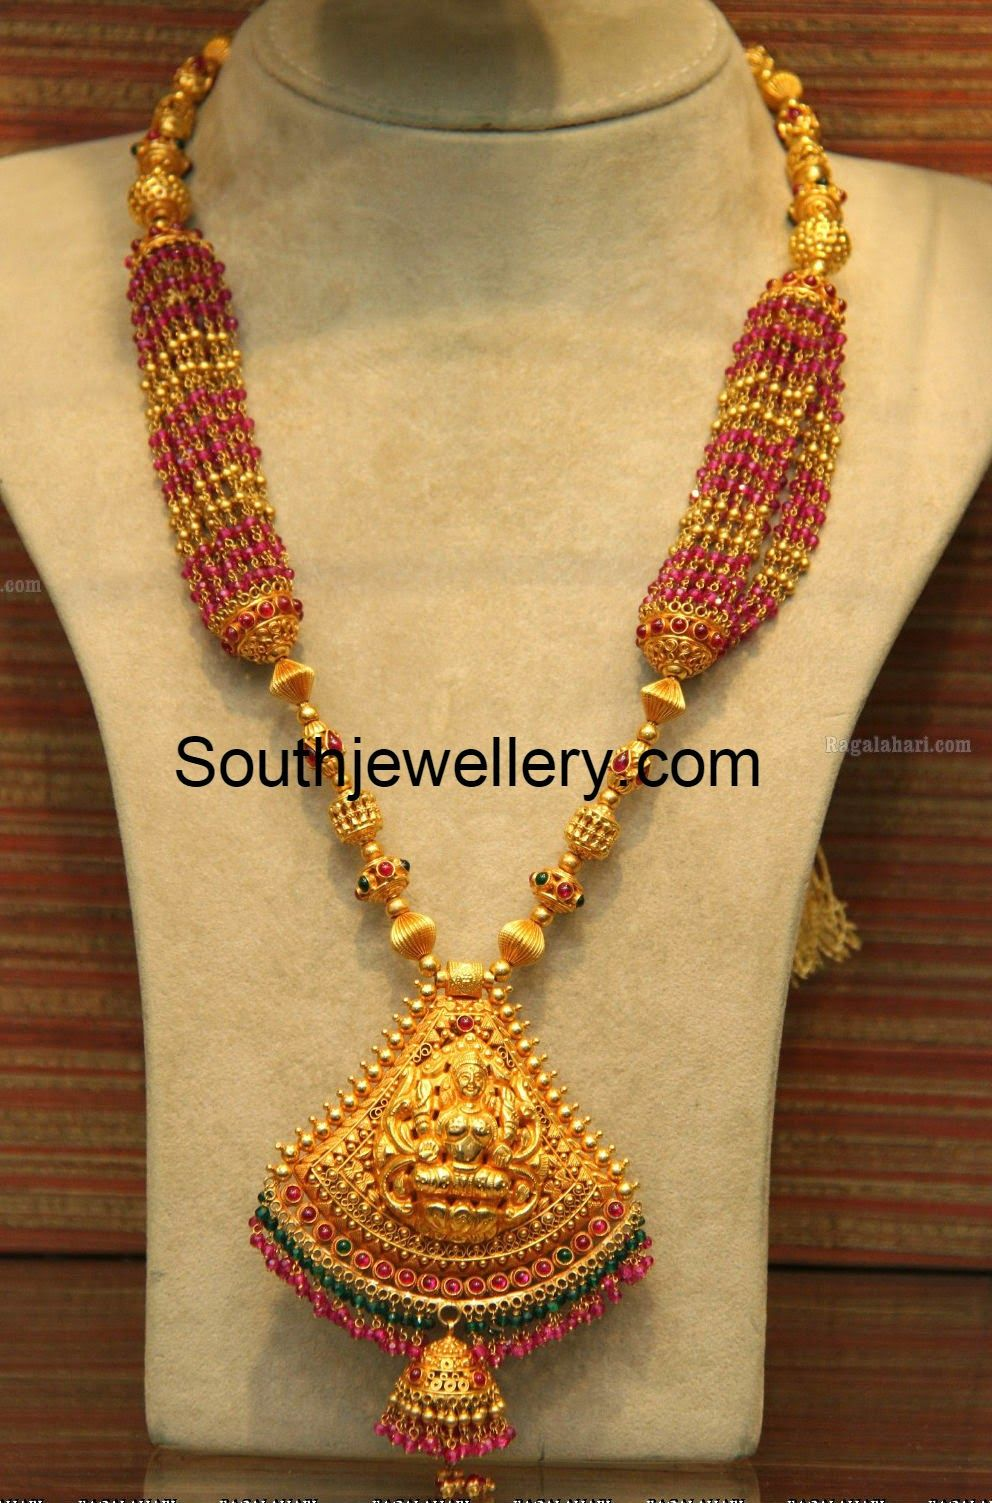 carat gold antique finish gold balls necklace strung with